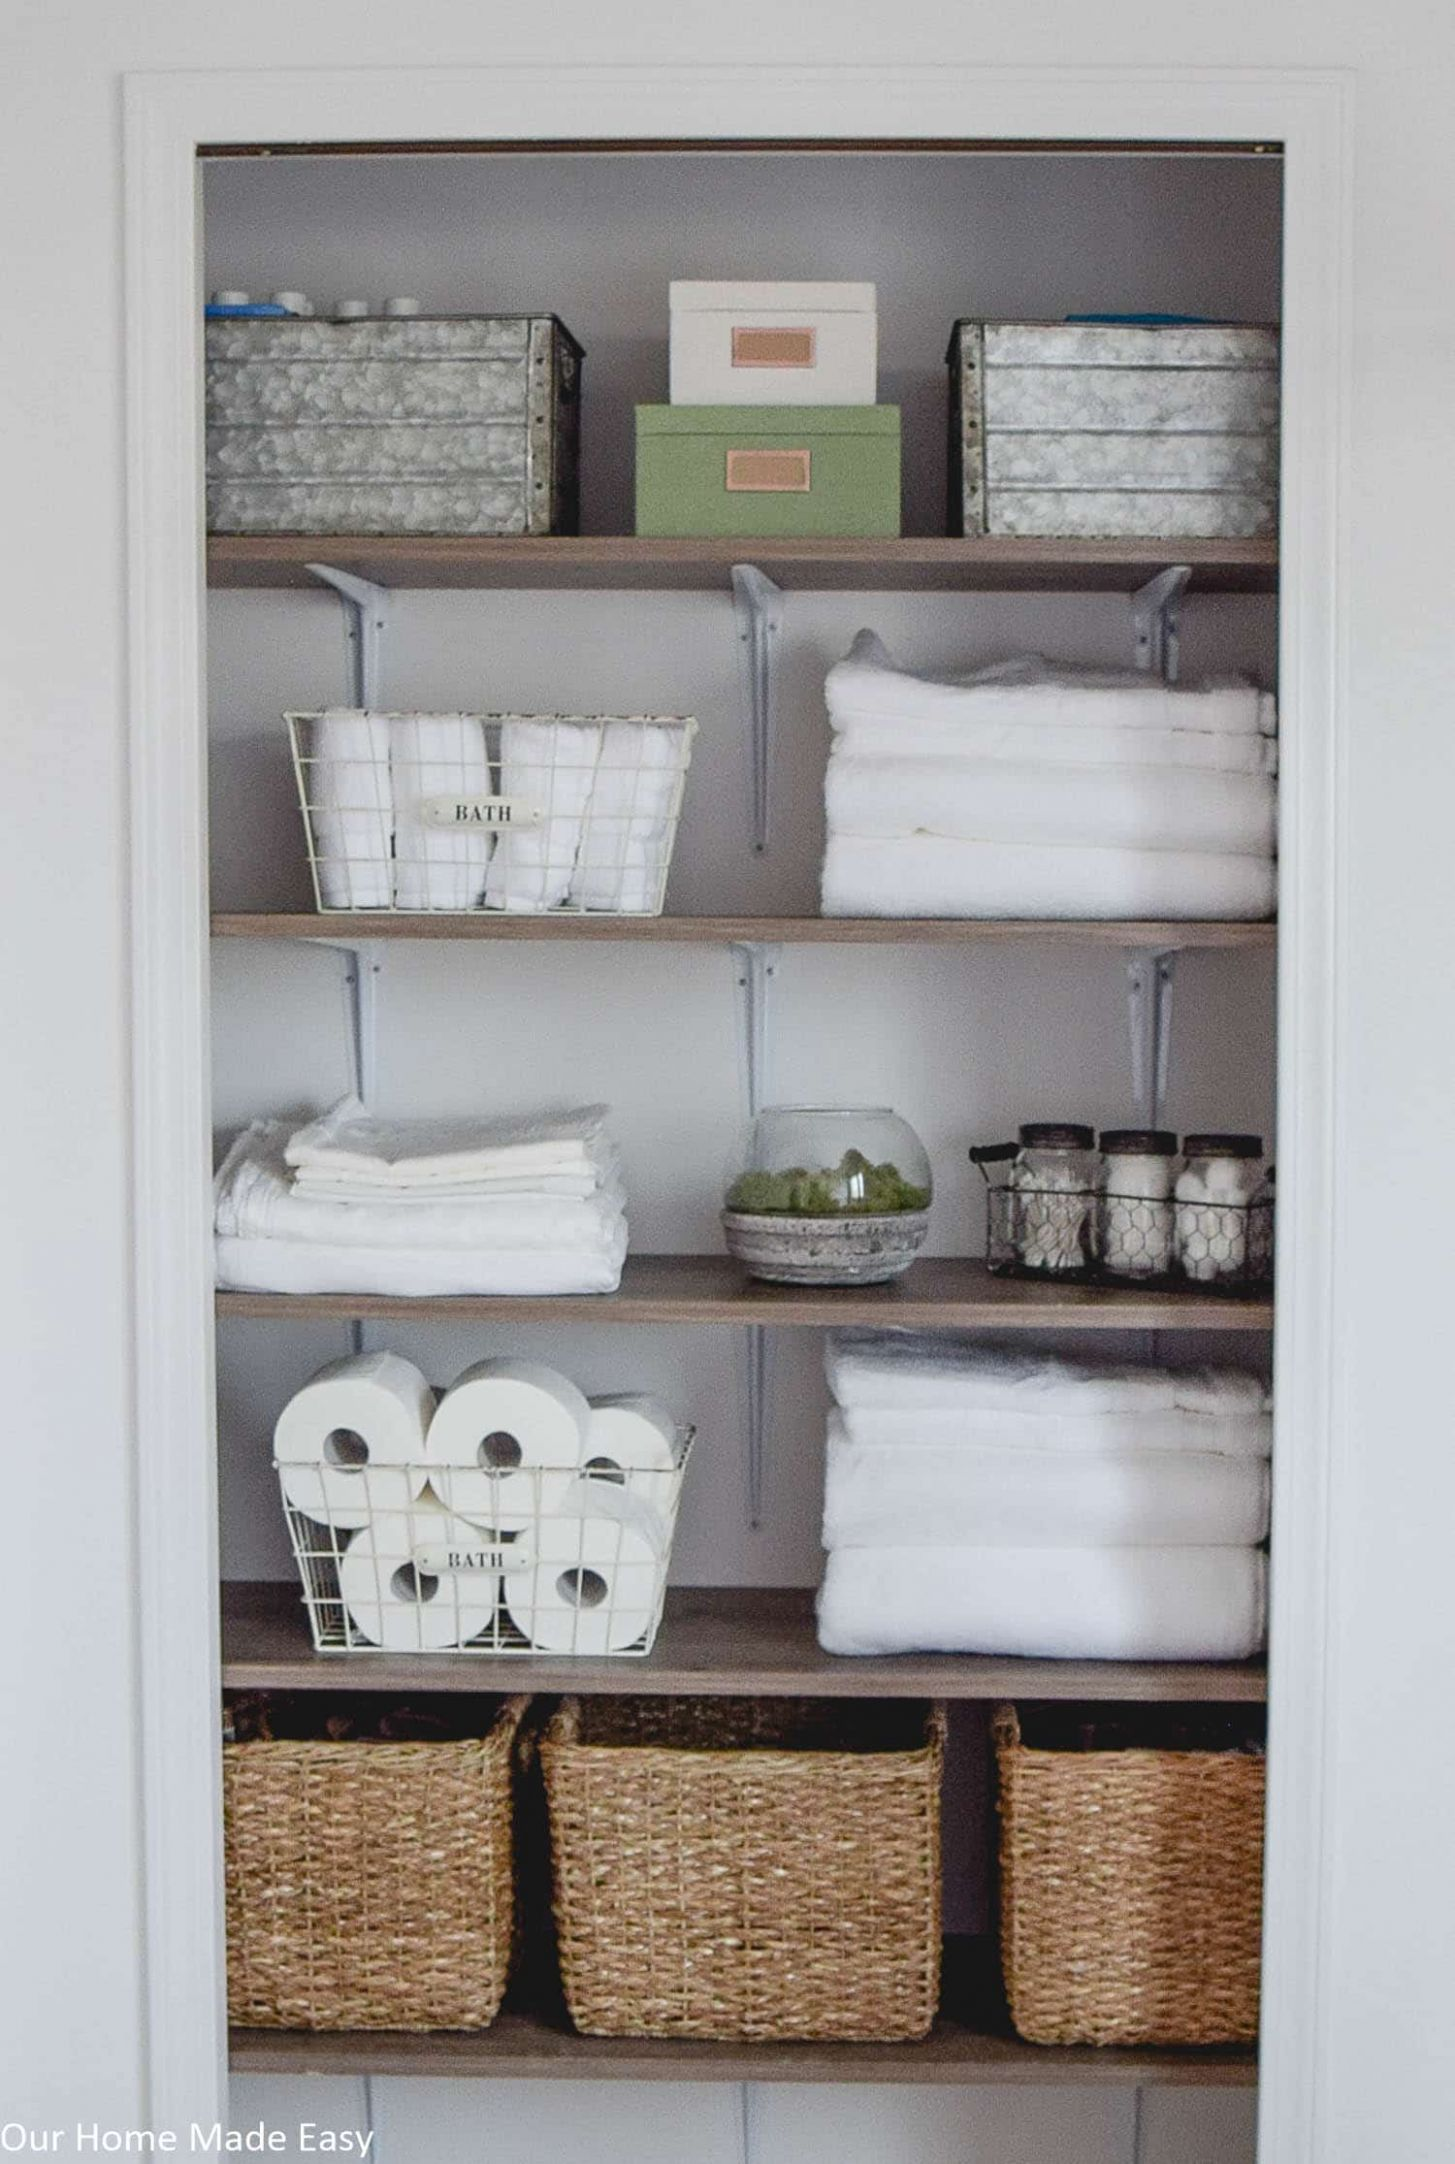 Bathroom Linen Closet Reveal – Our Home Made Easy